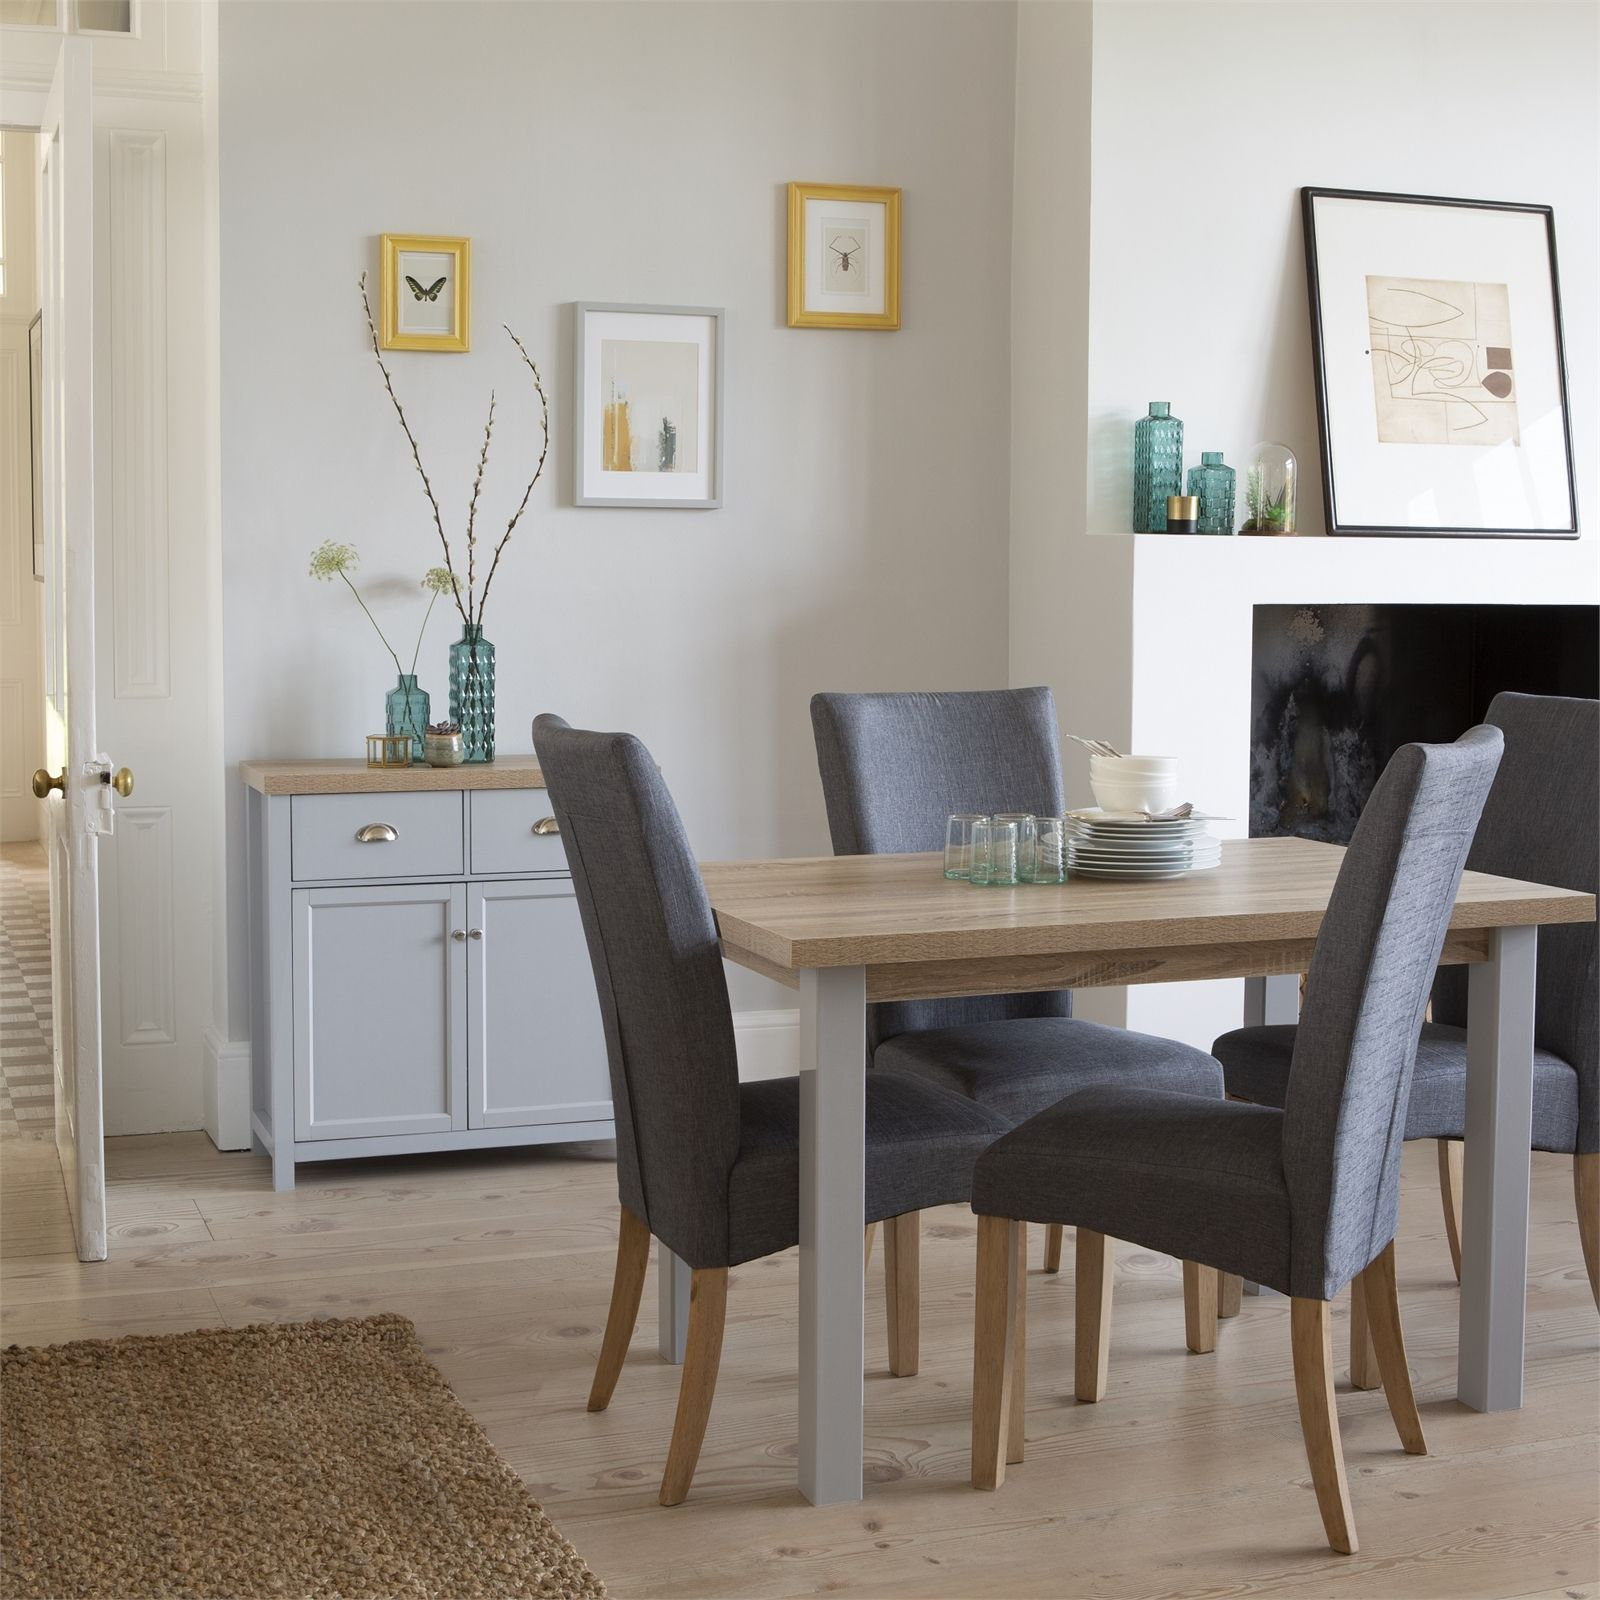 Harlow Dining Table And 6 Chairs Oak And Grey At Homebase Co Uk